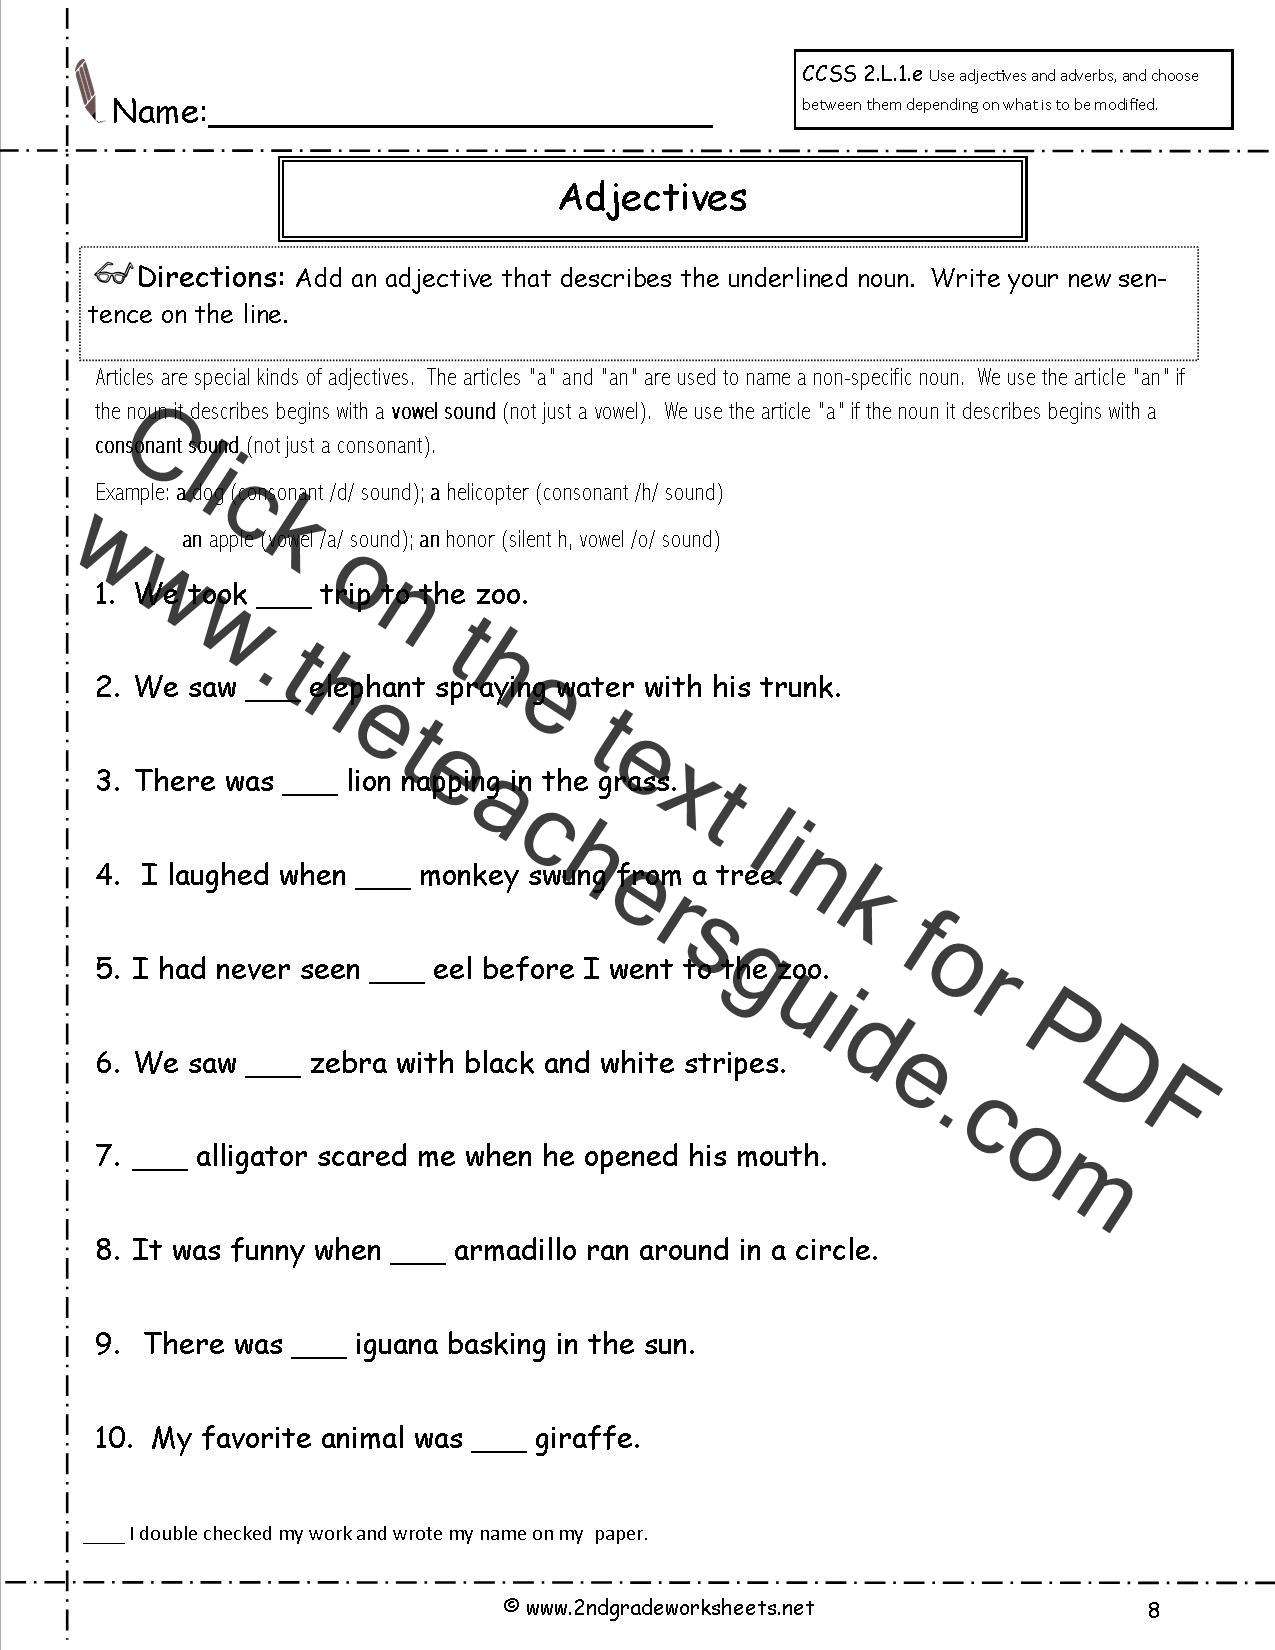 Free LanguageGrammar Worksheets and Printouts – Printable Grammar Worksheets